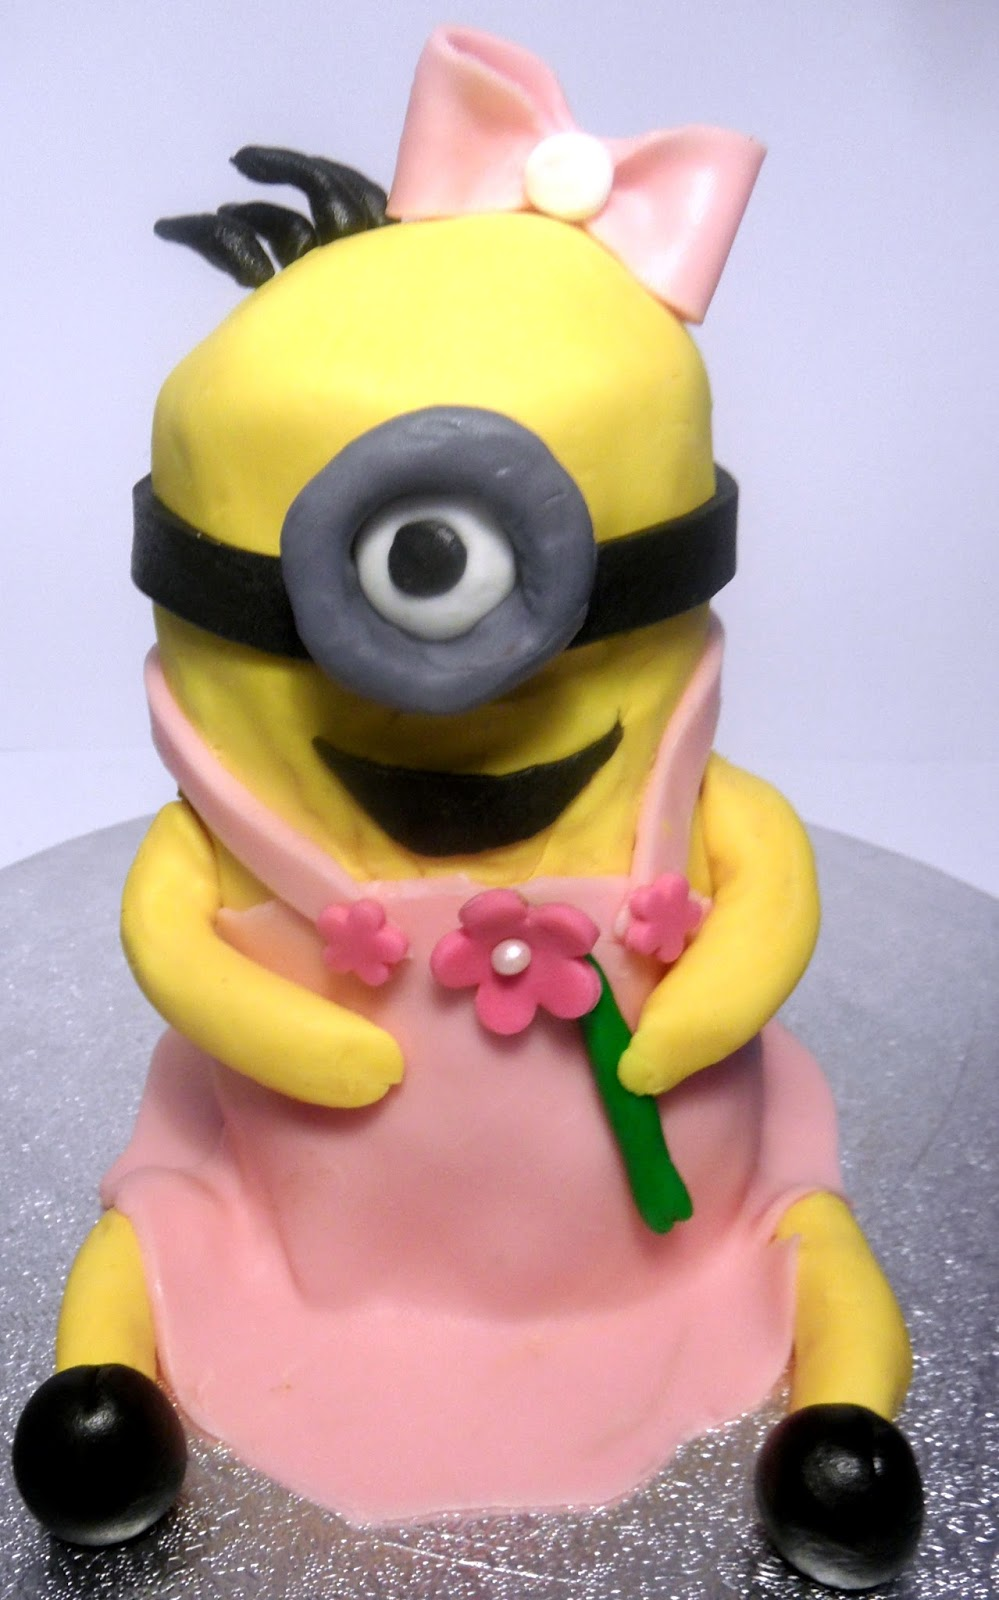 Minion Kuchen Backen Minion Torte Coppenrath